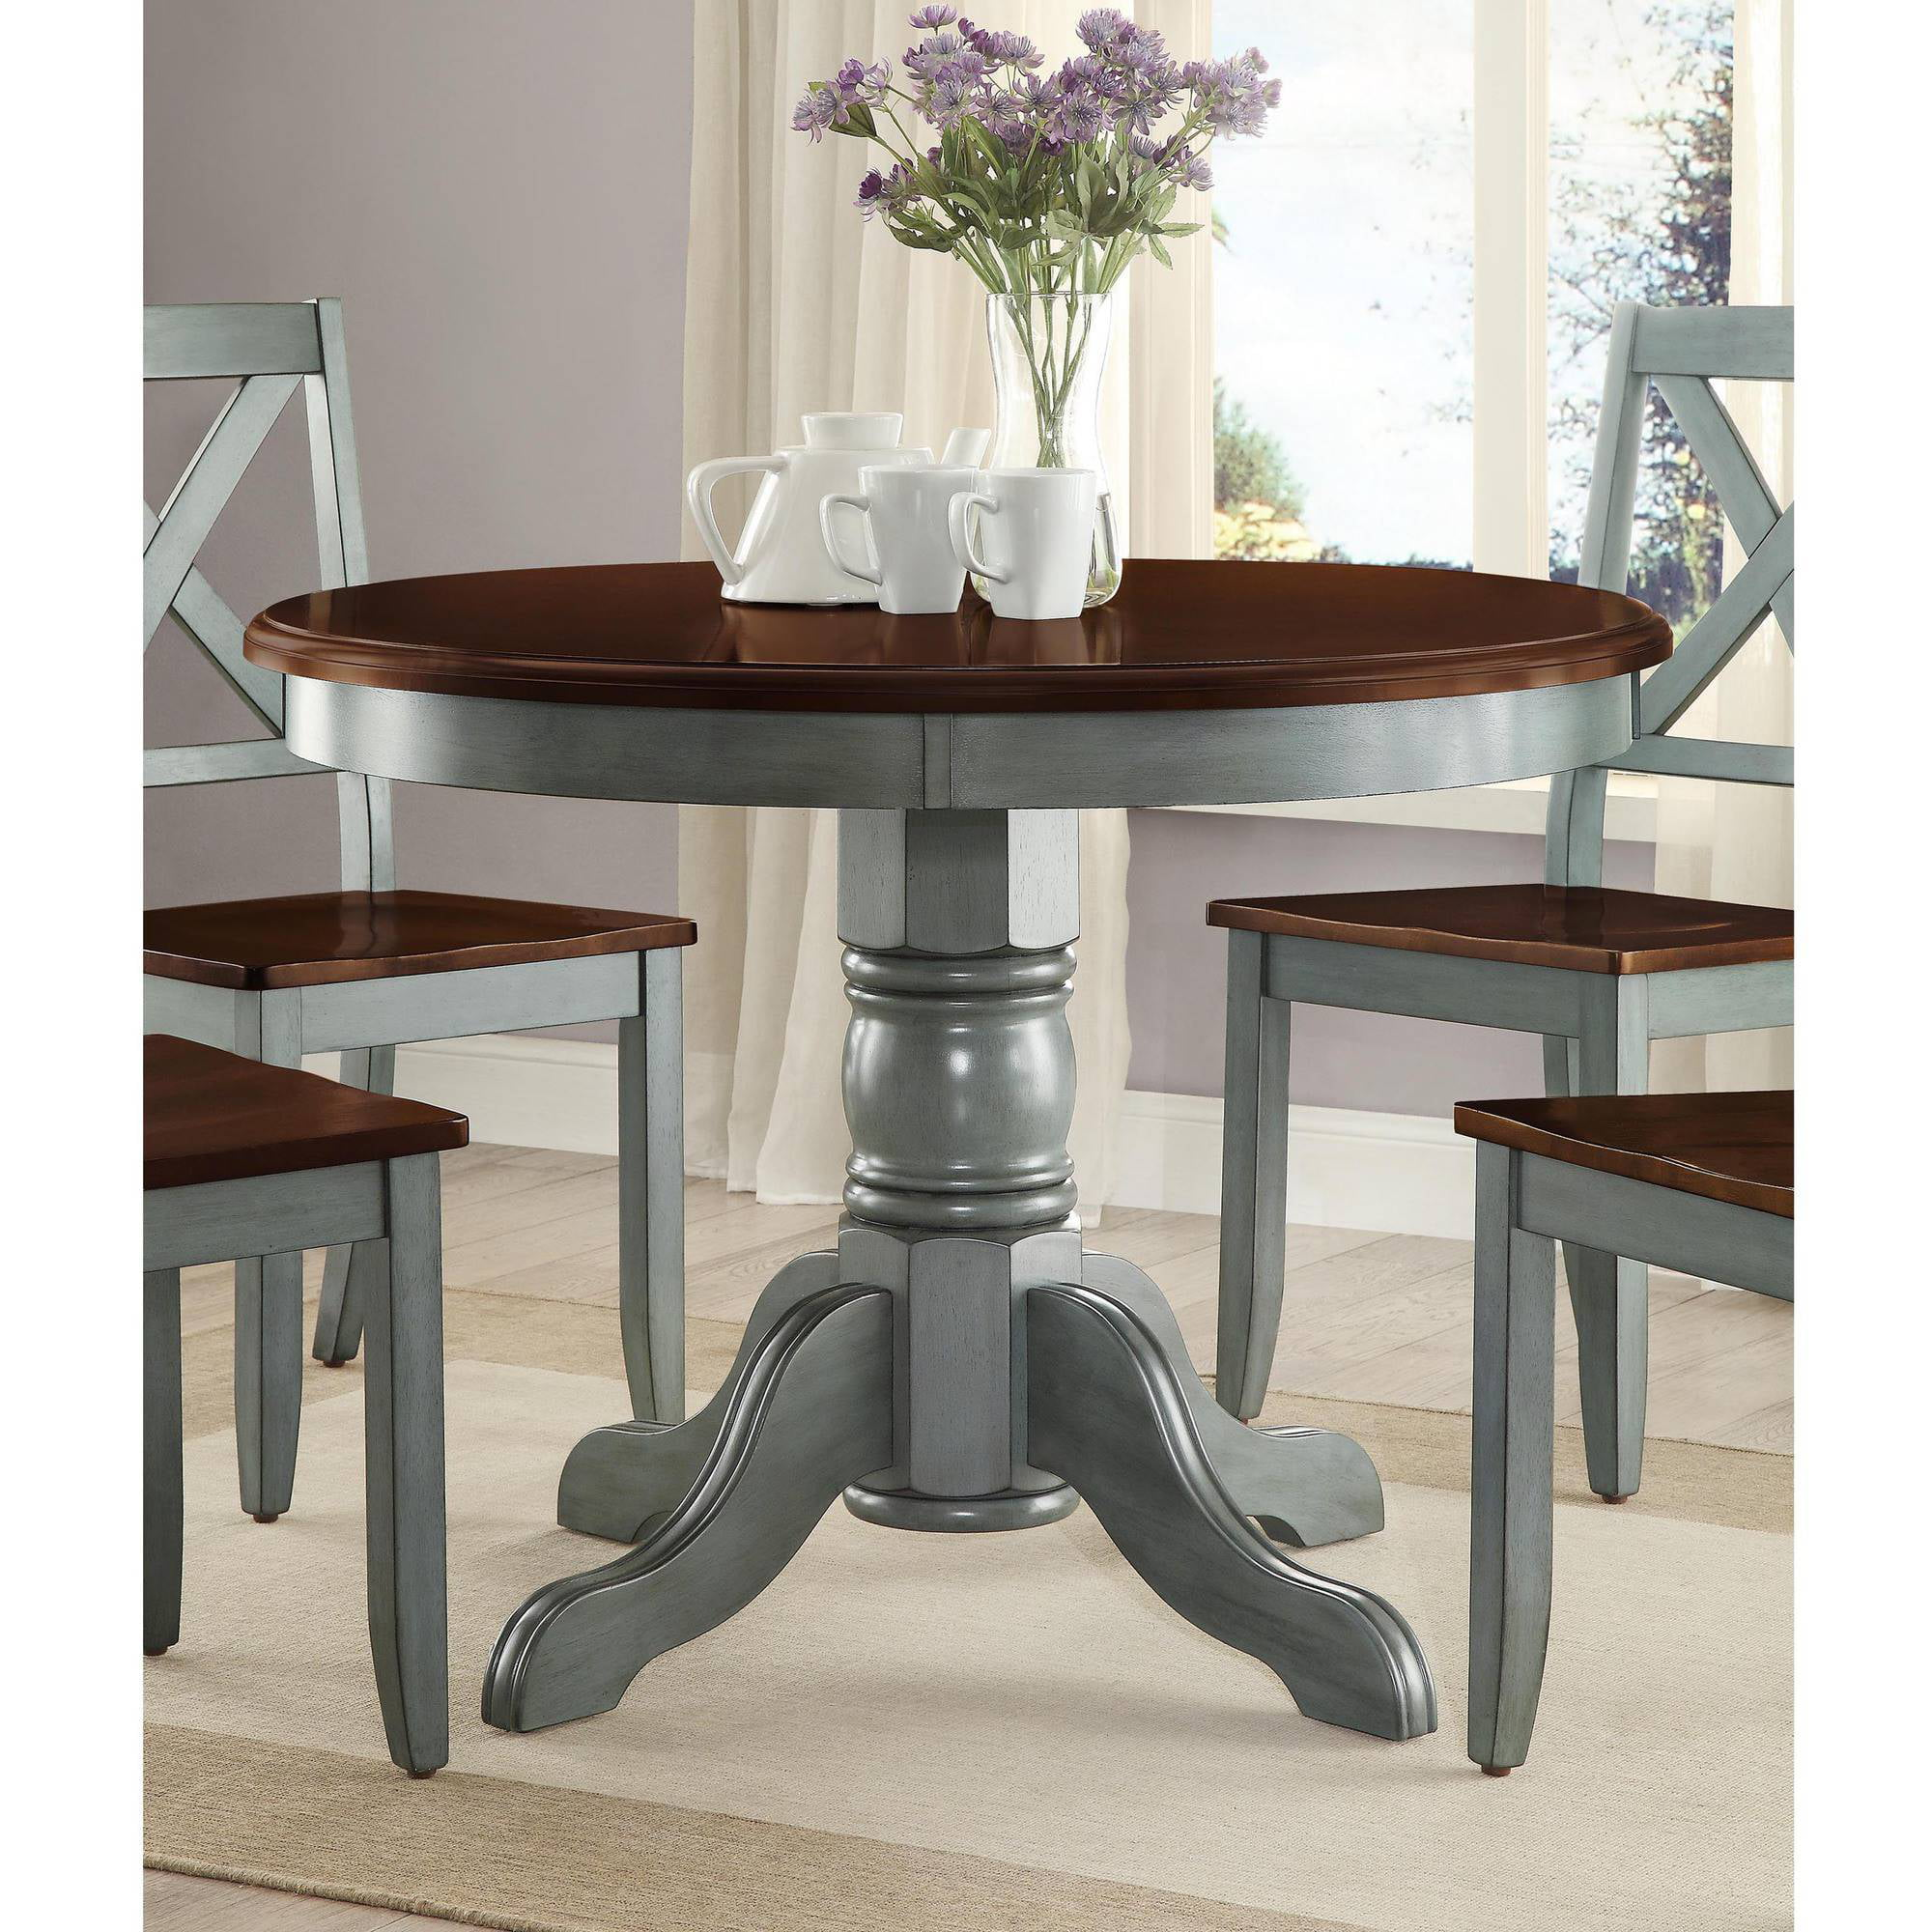 Mainstays 5 piece glass and metal dining set 42 round tabletop walmart com